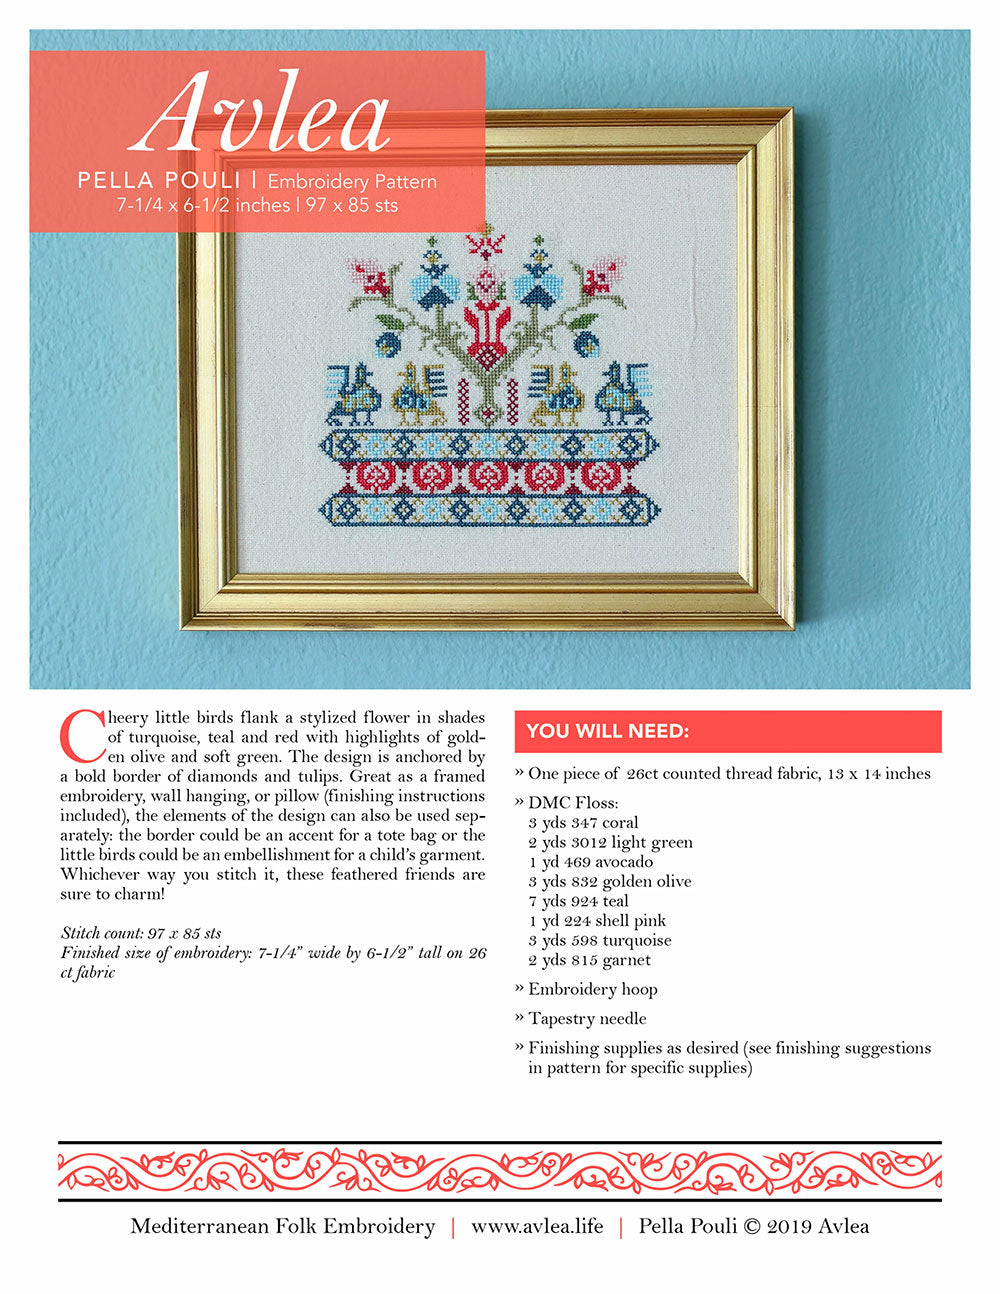 Mediterranean Folk Cross Stitch Kit - Pella Pouli